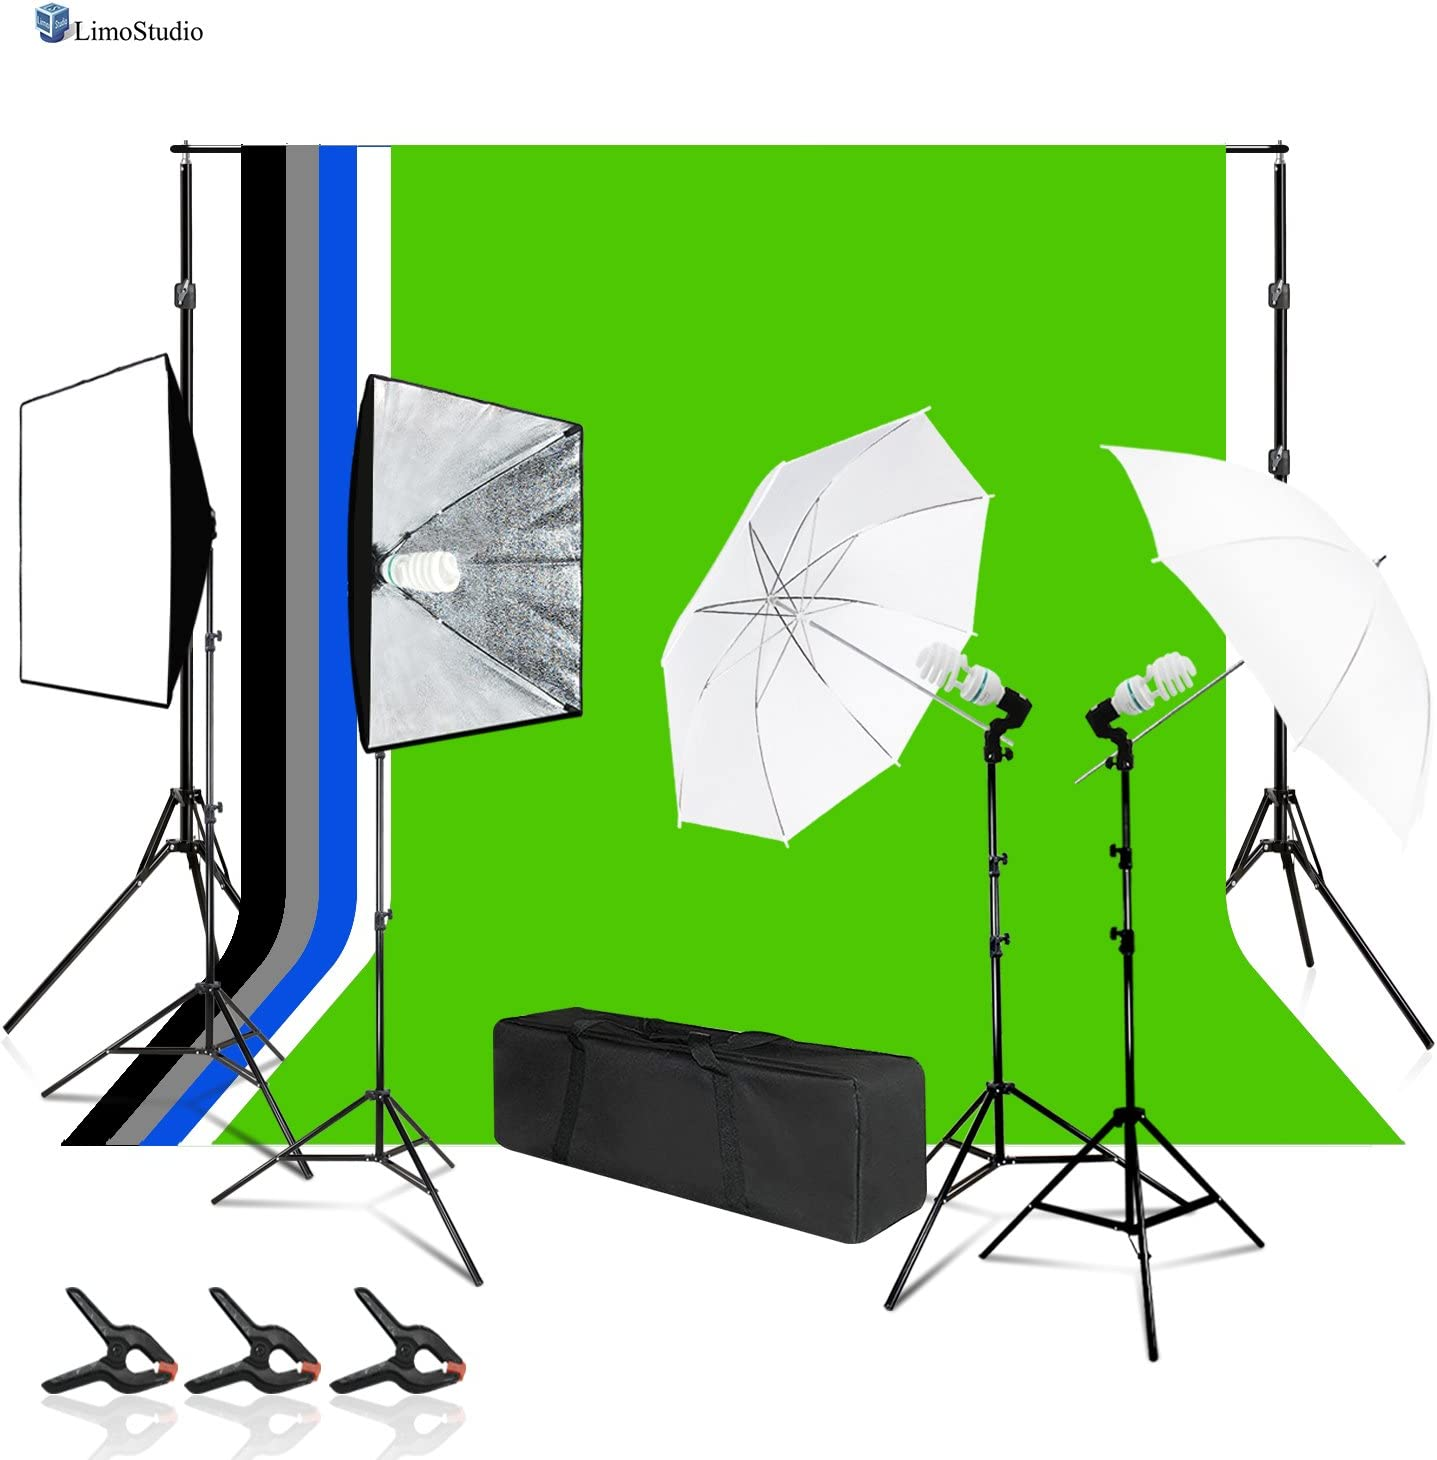 LimoStudio Photo Video Background Backdrop with Max 75% OFF Lighting Sales of SALE items from new works Kit Sup